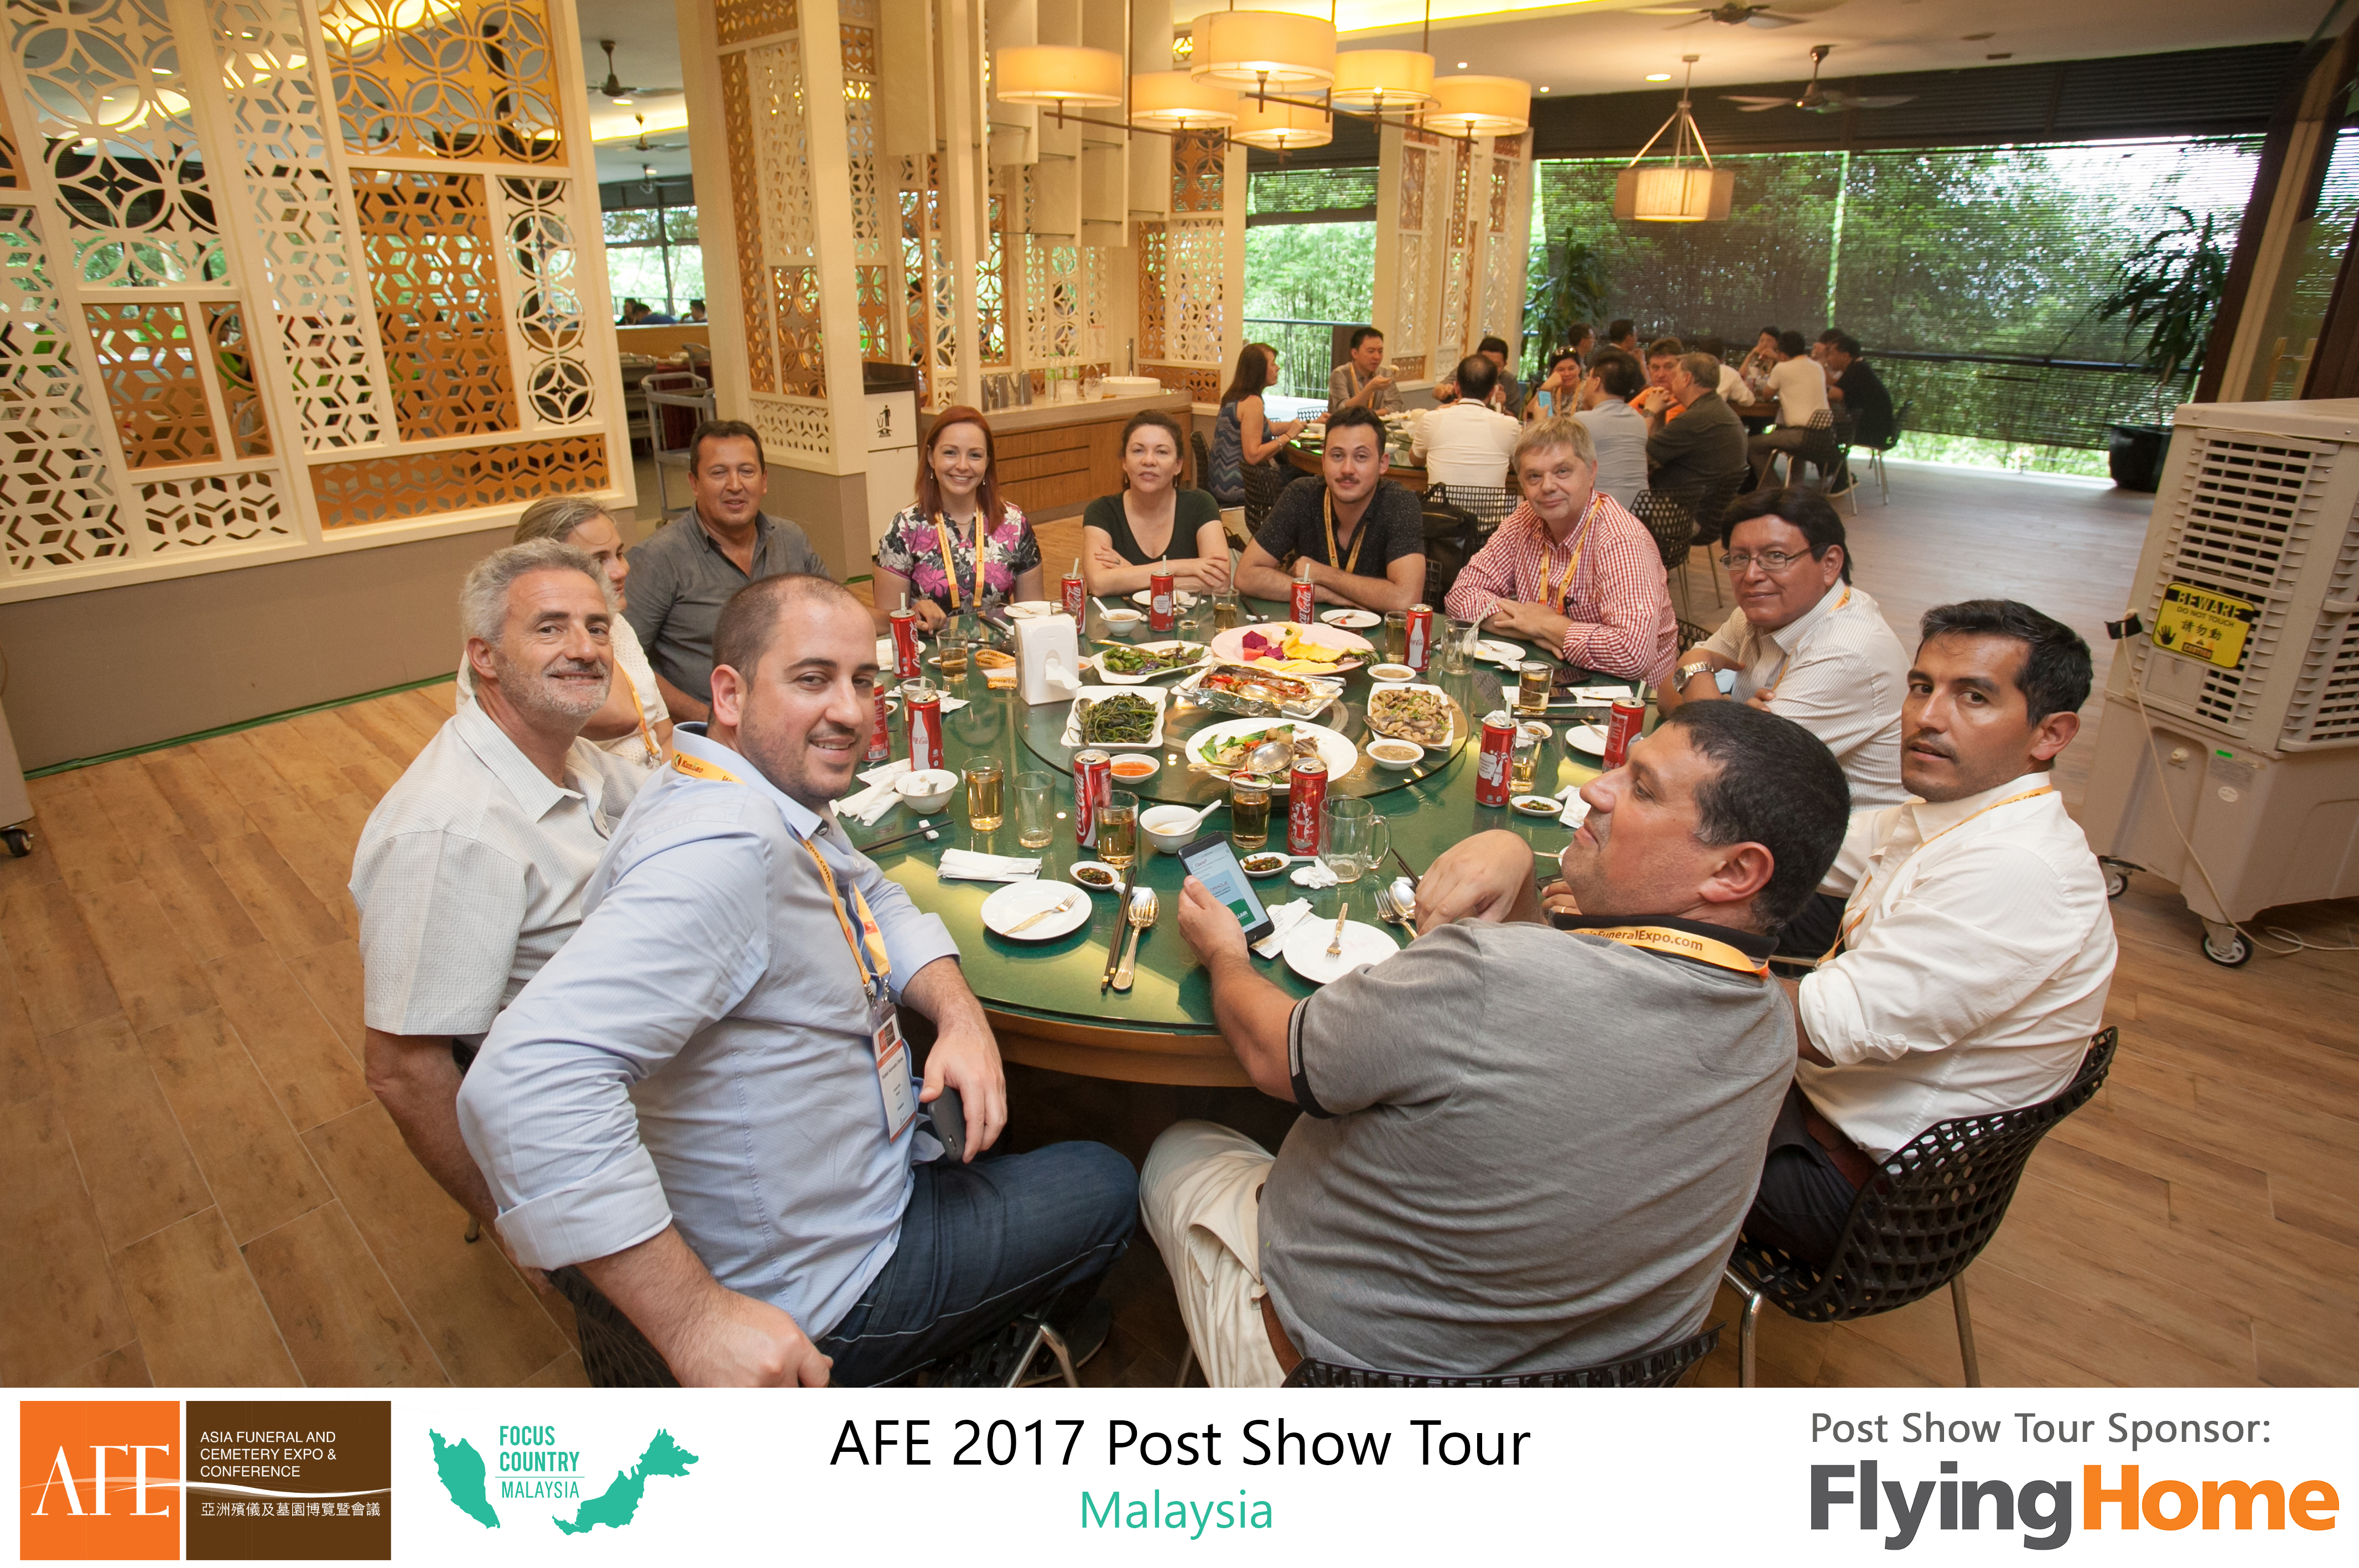 AFE Post Show Tour 2017 Day 2 - 14